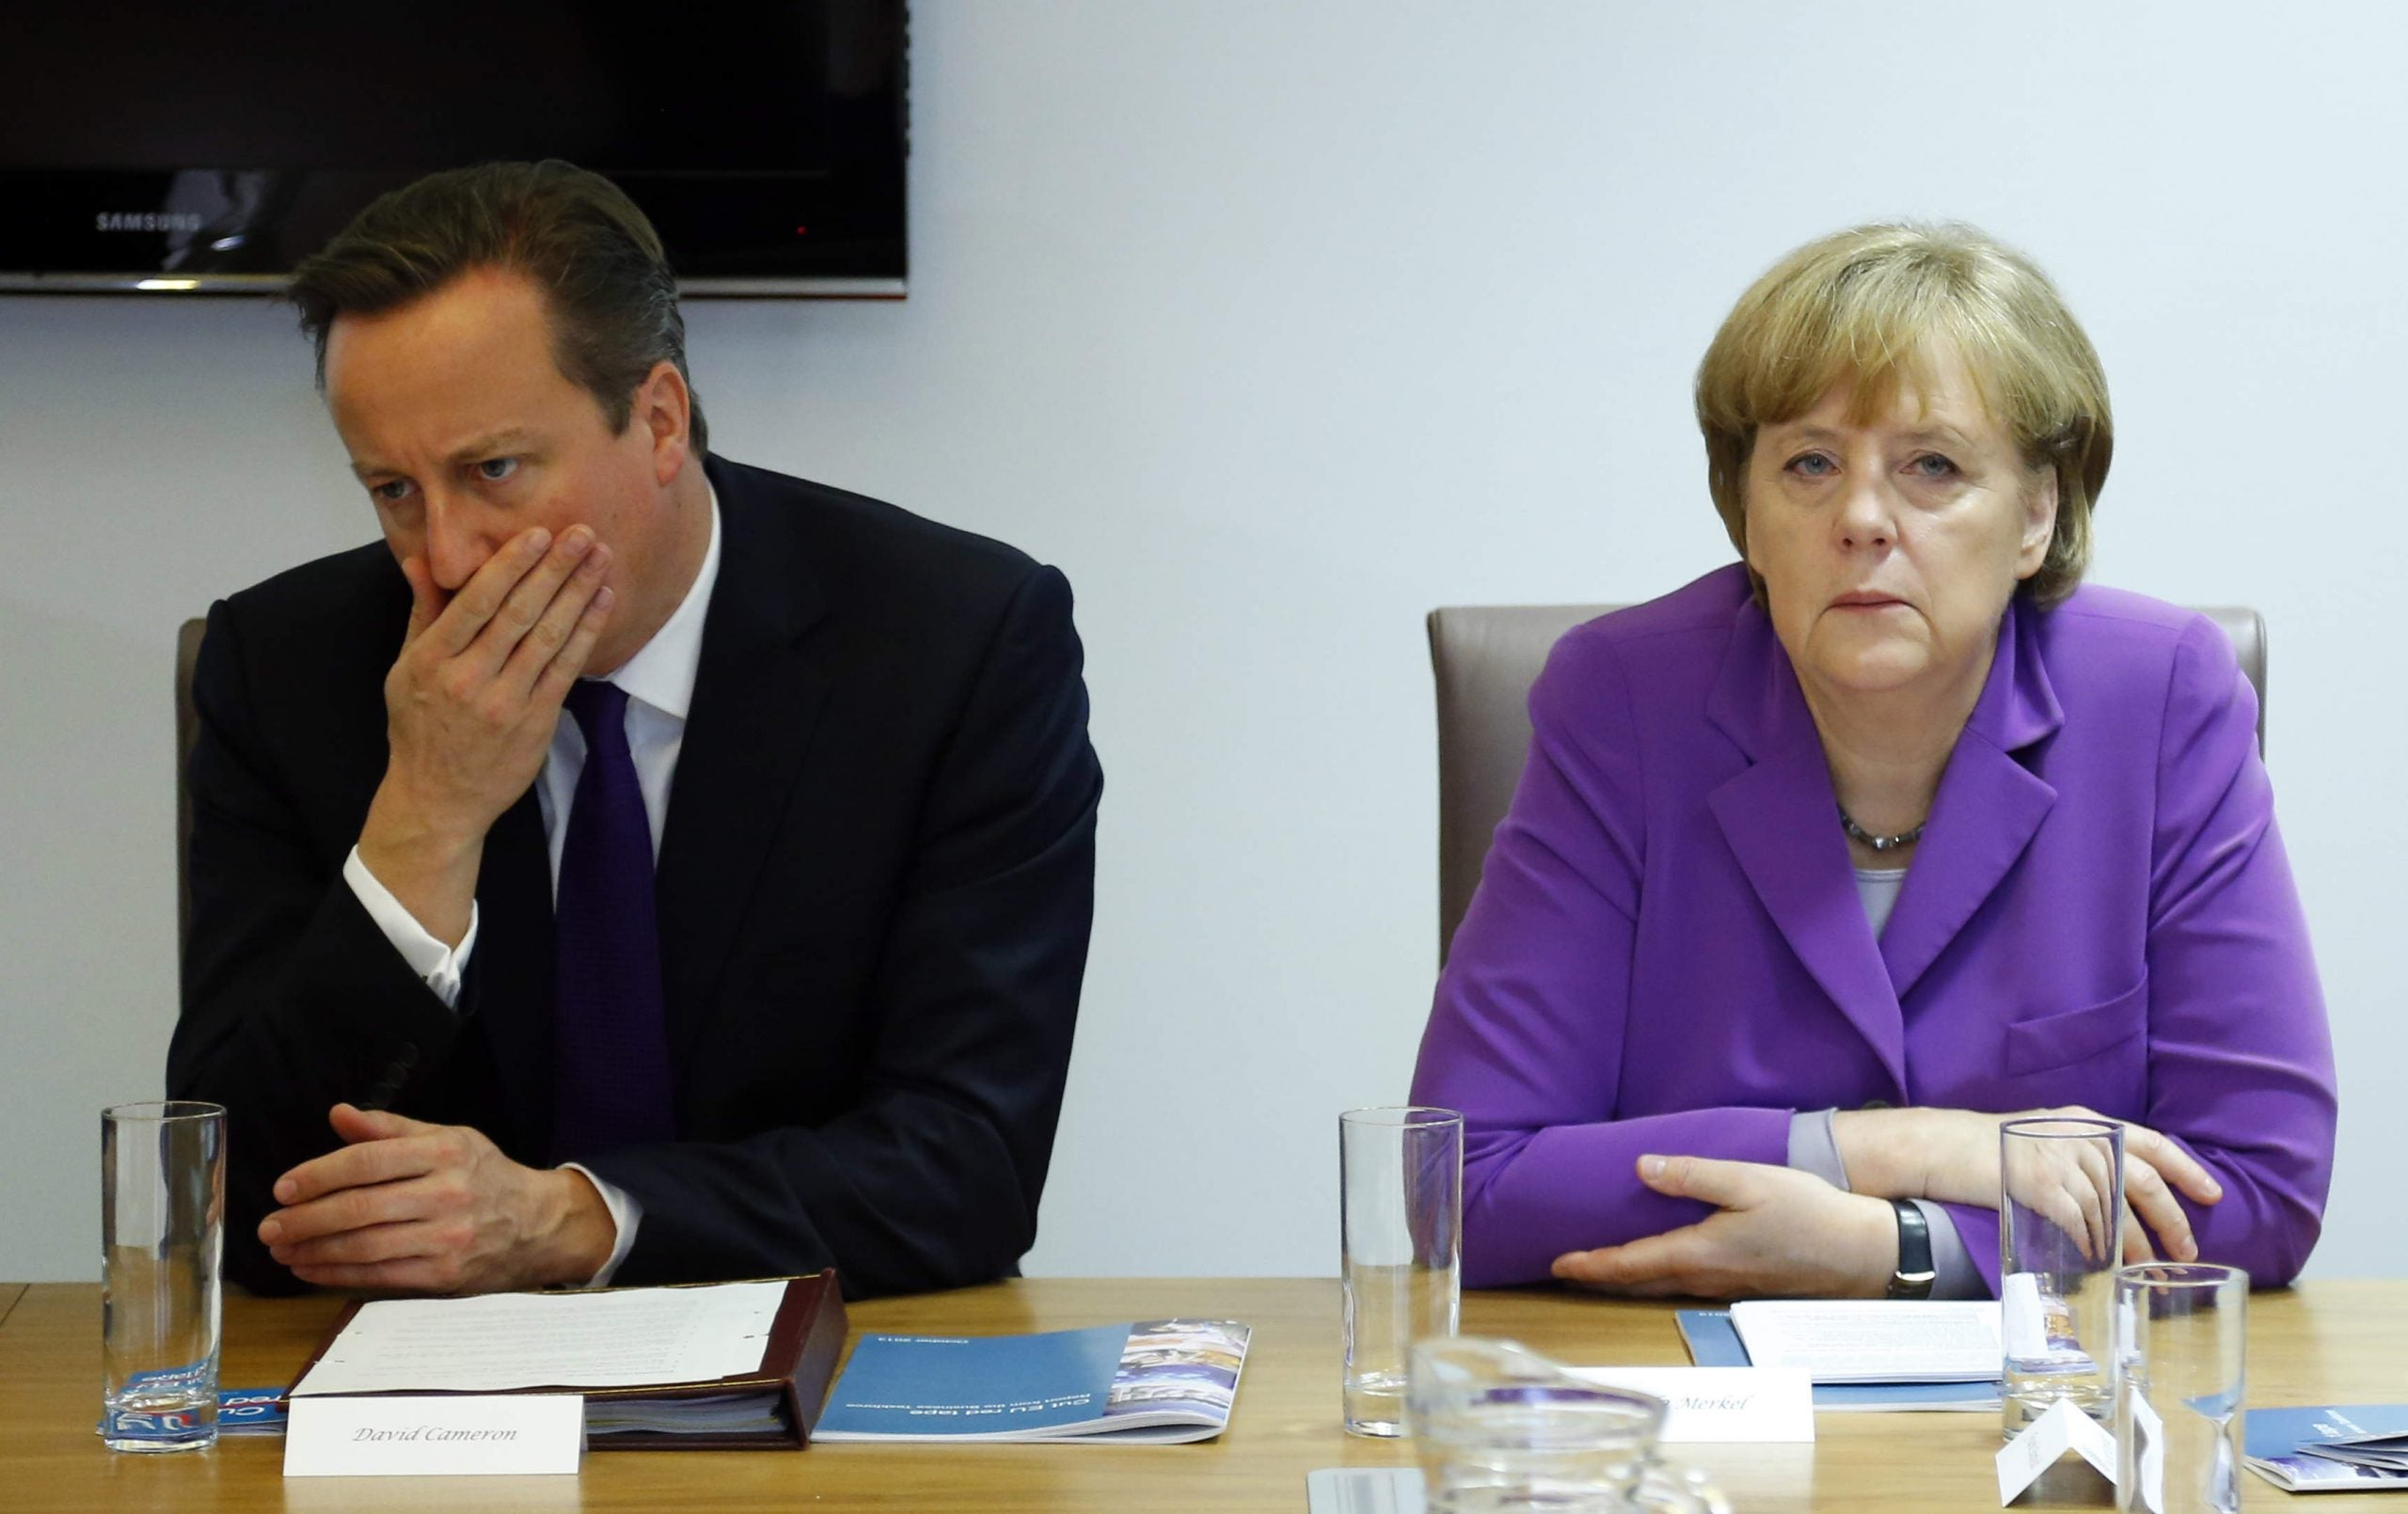 Cameron only has himself to blame for the Tories' latest Europe row